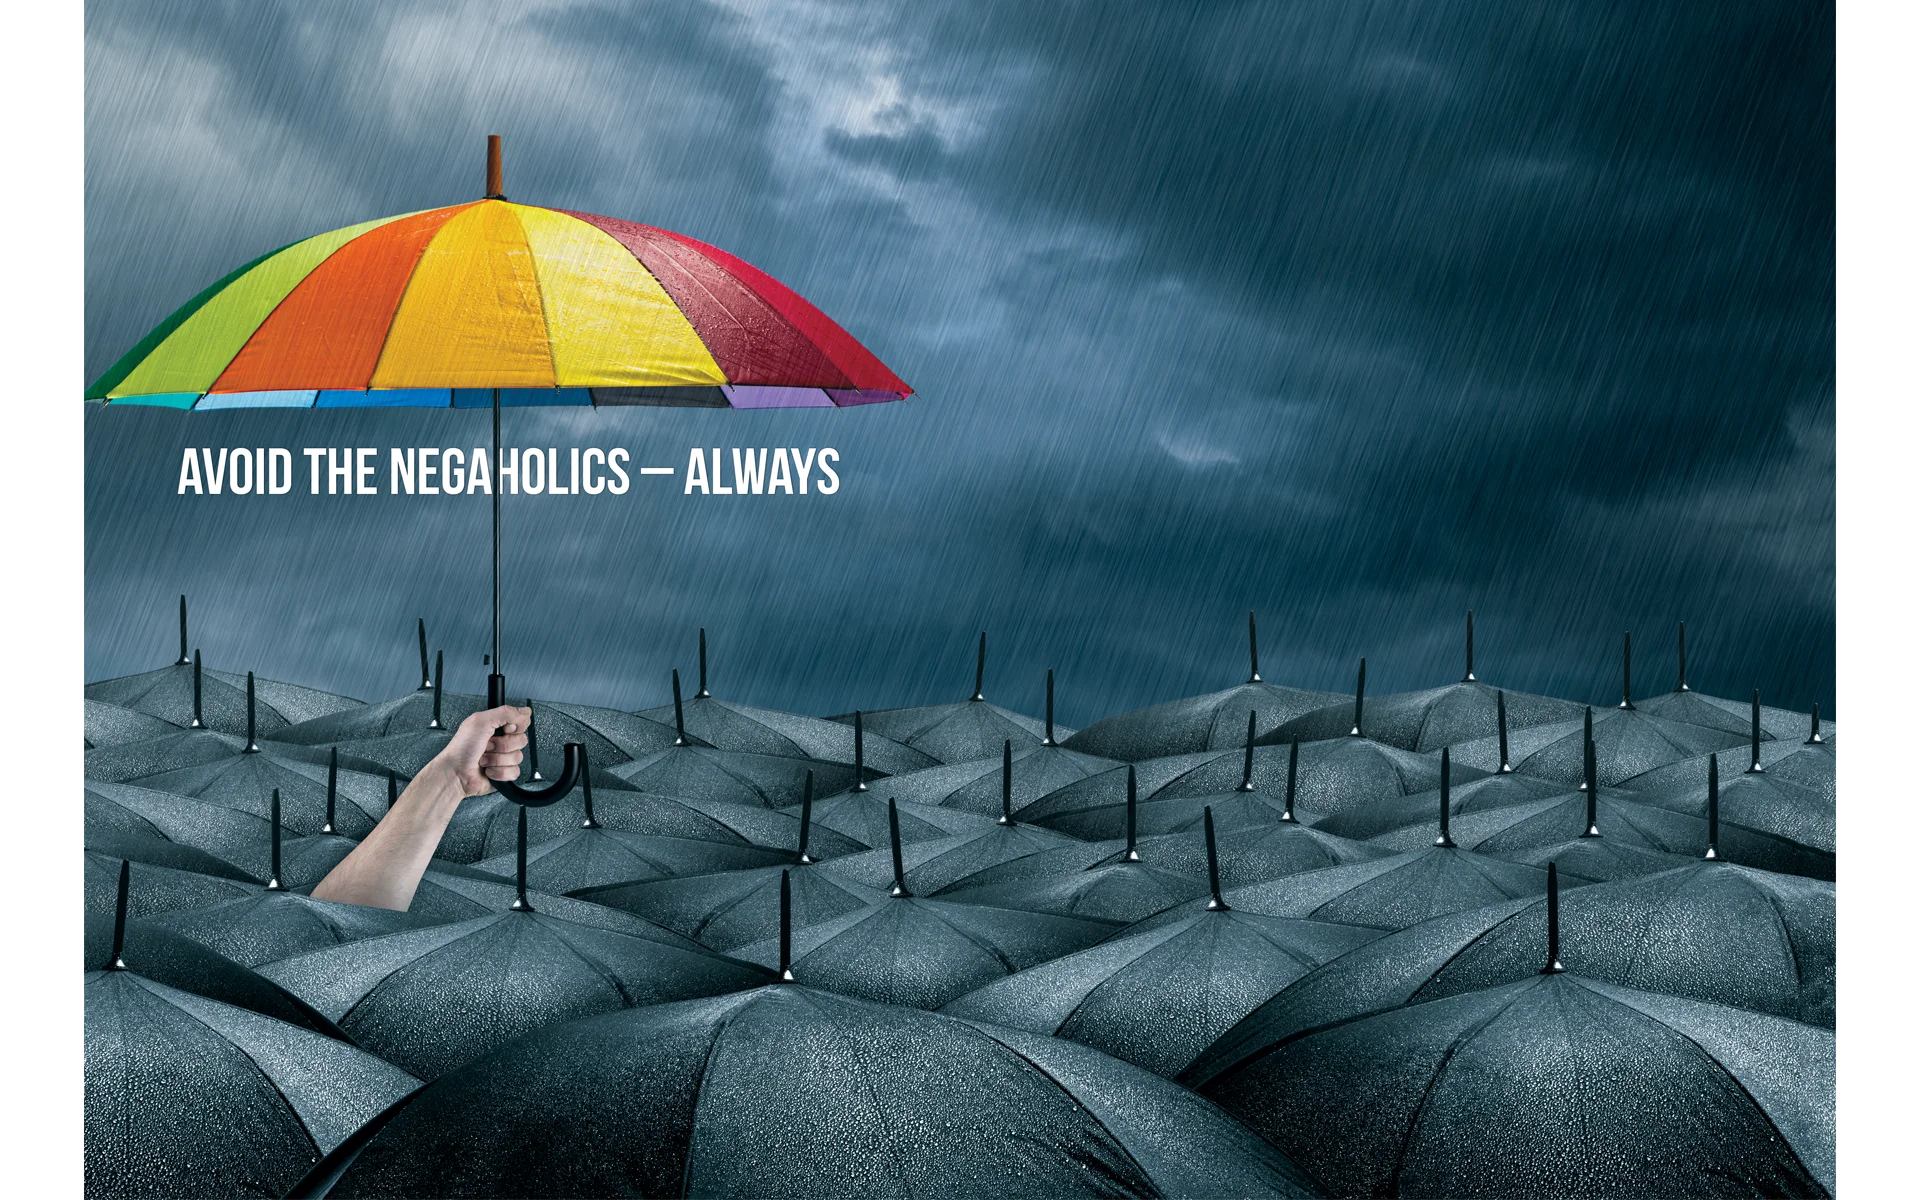 Avoid the Negaholics – Always